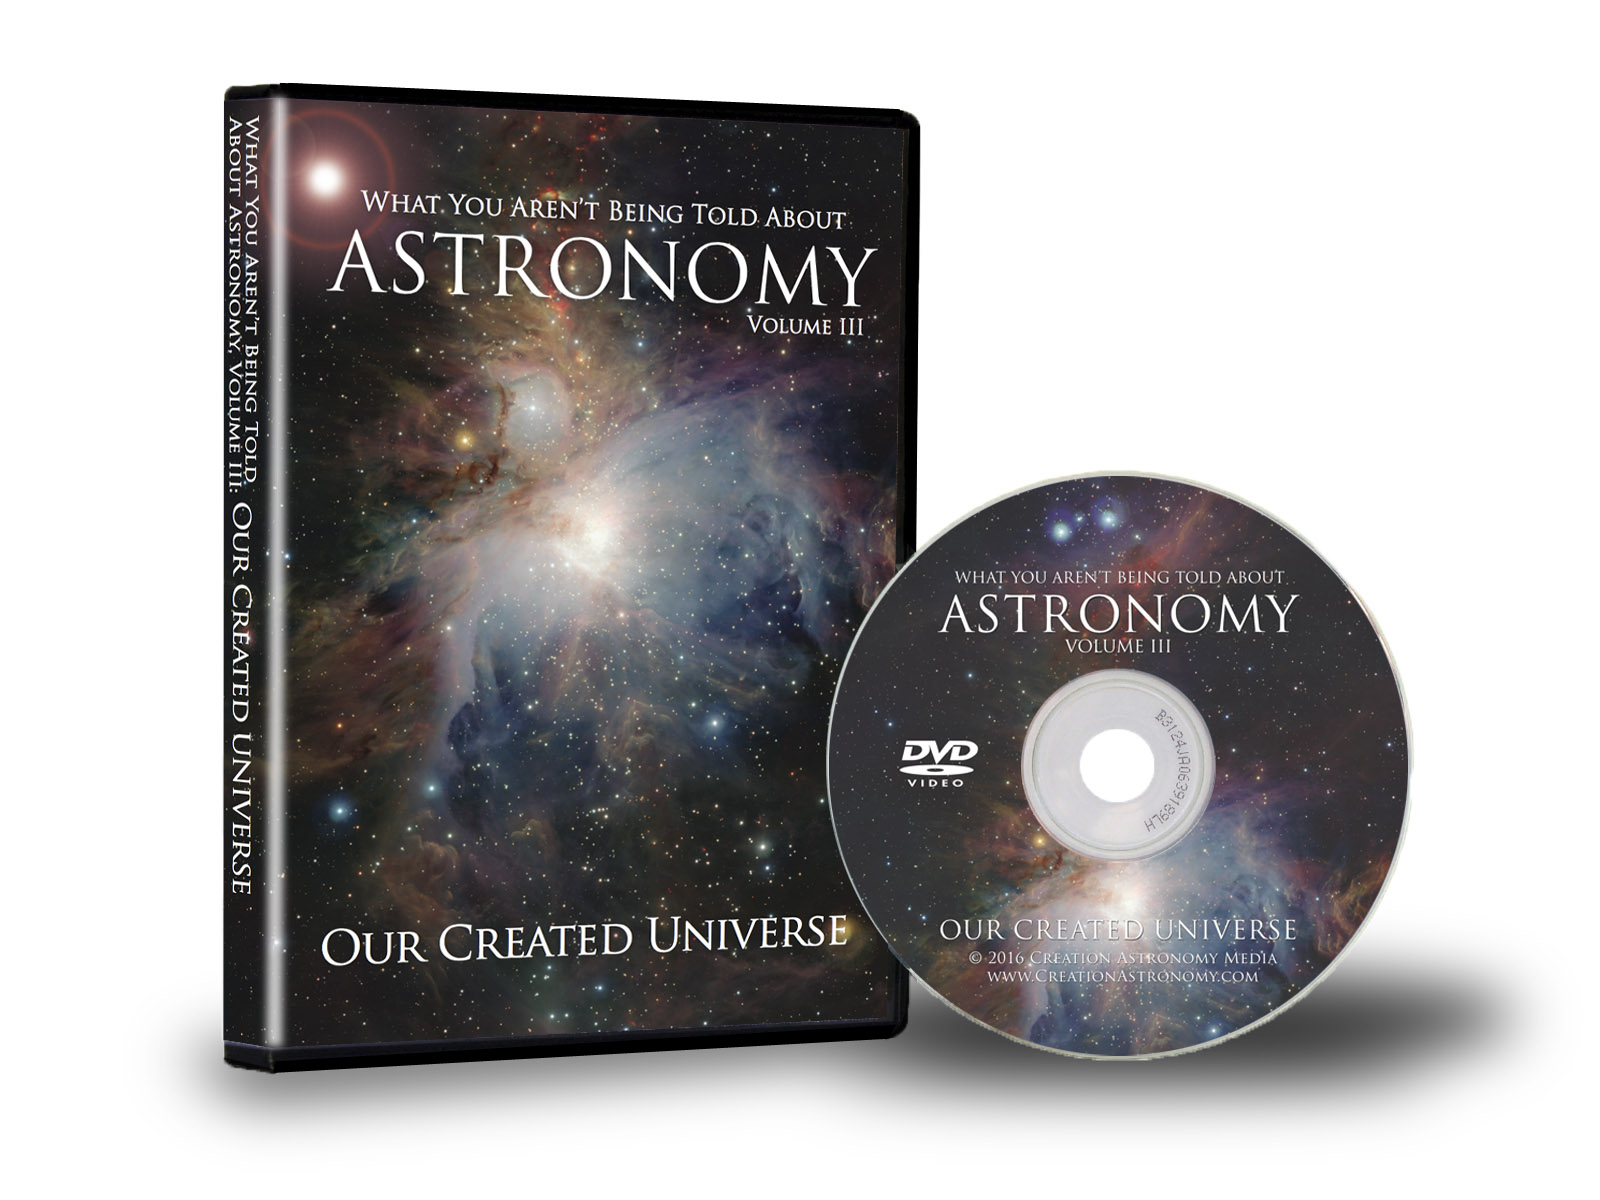 What you arent being told about Astronomy Vol-III-DVD-3